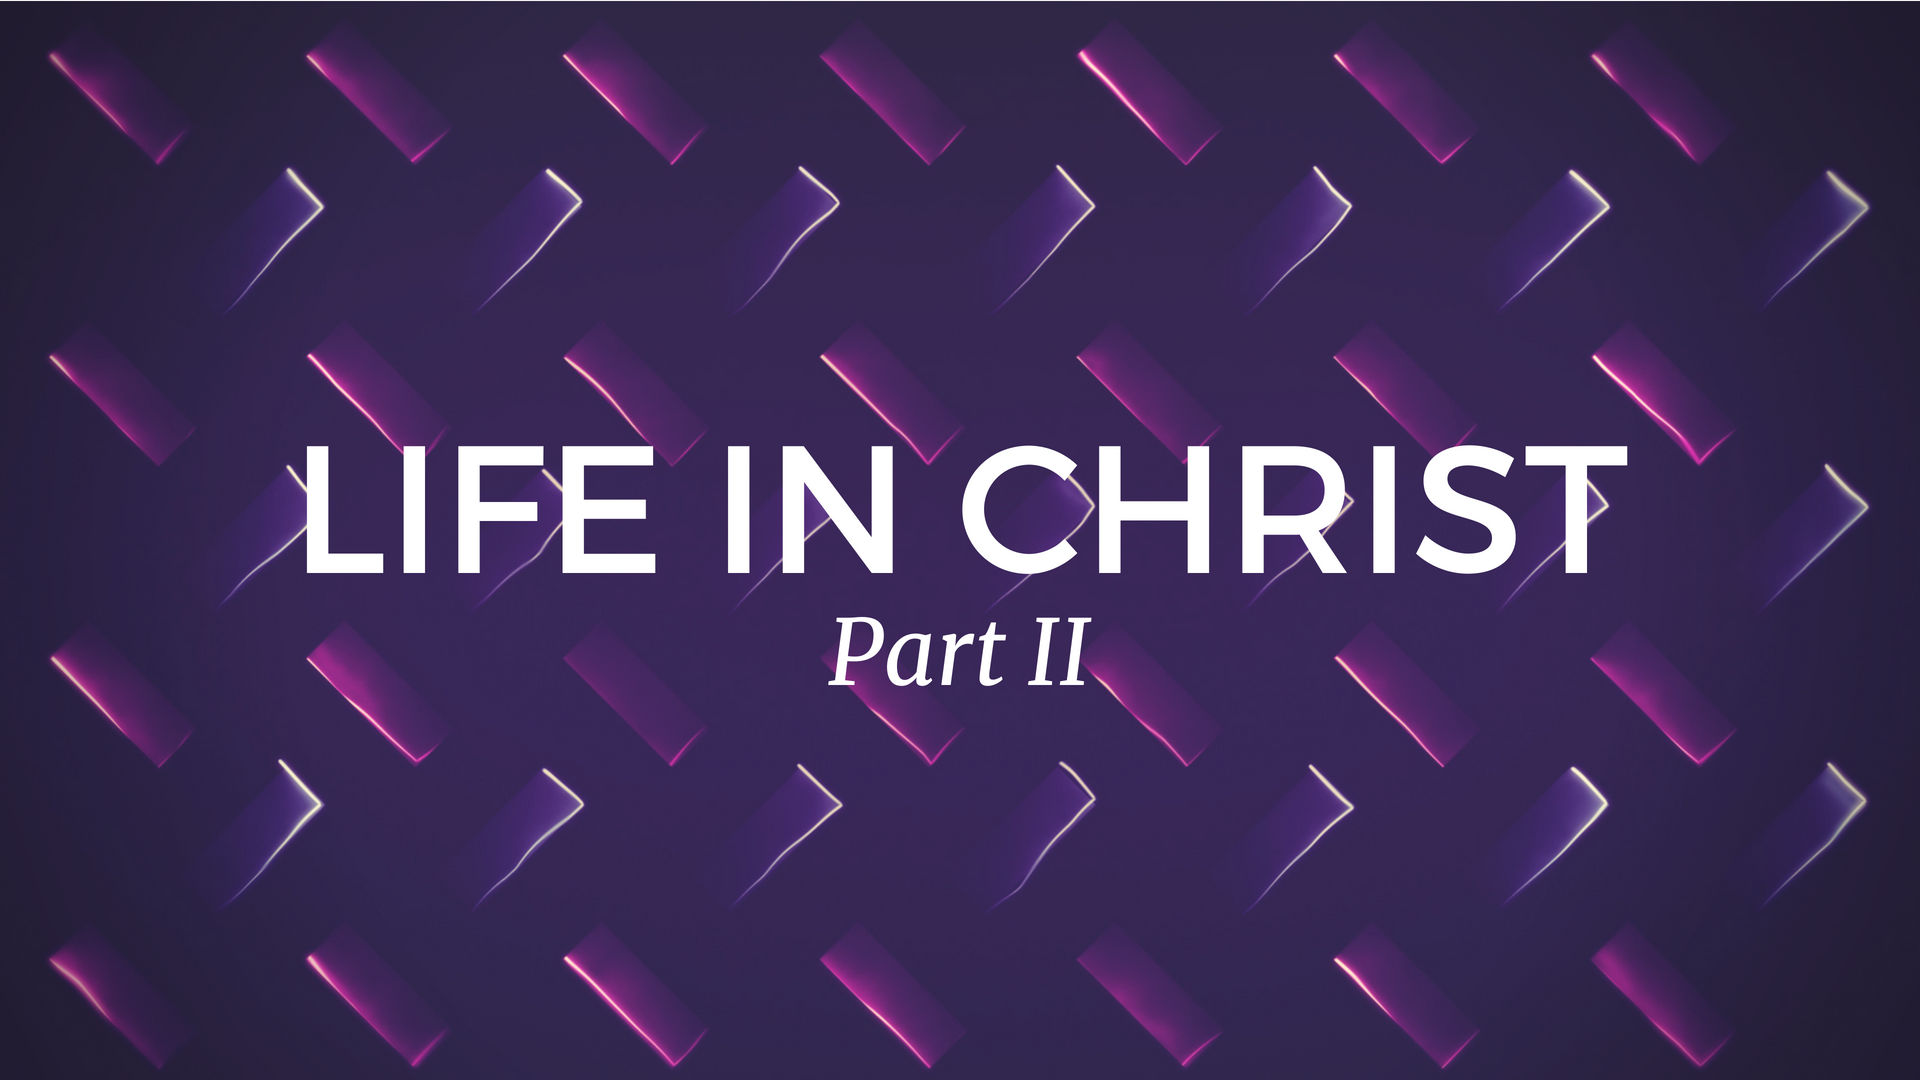 Life in Christ (part II)